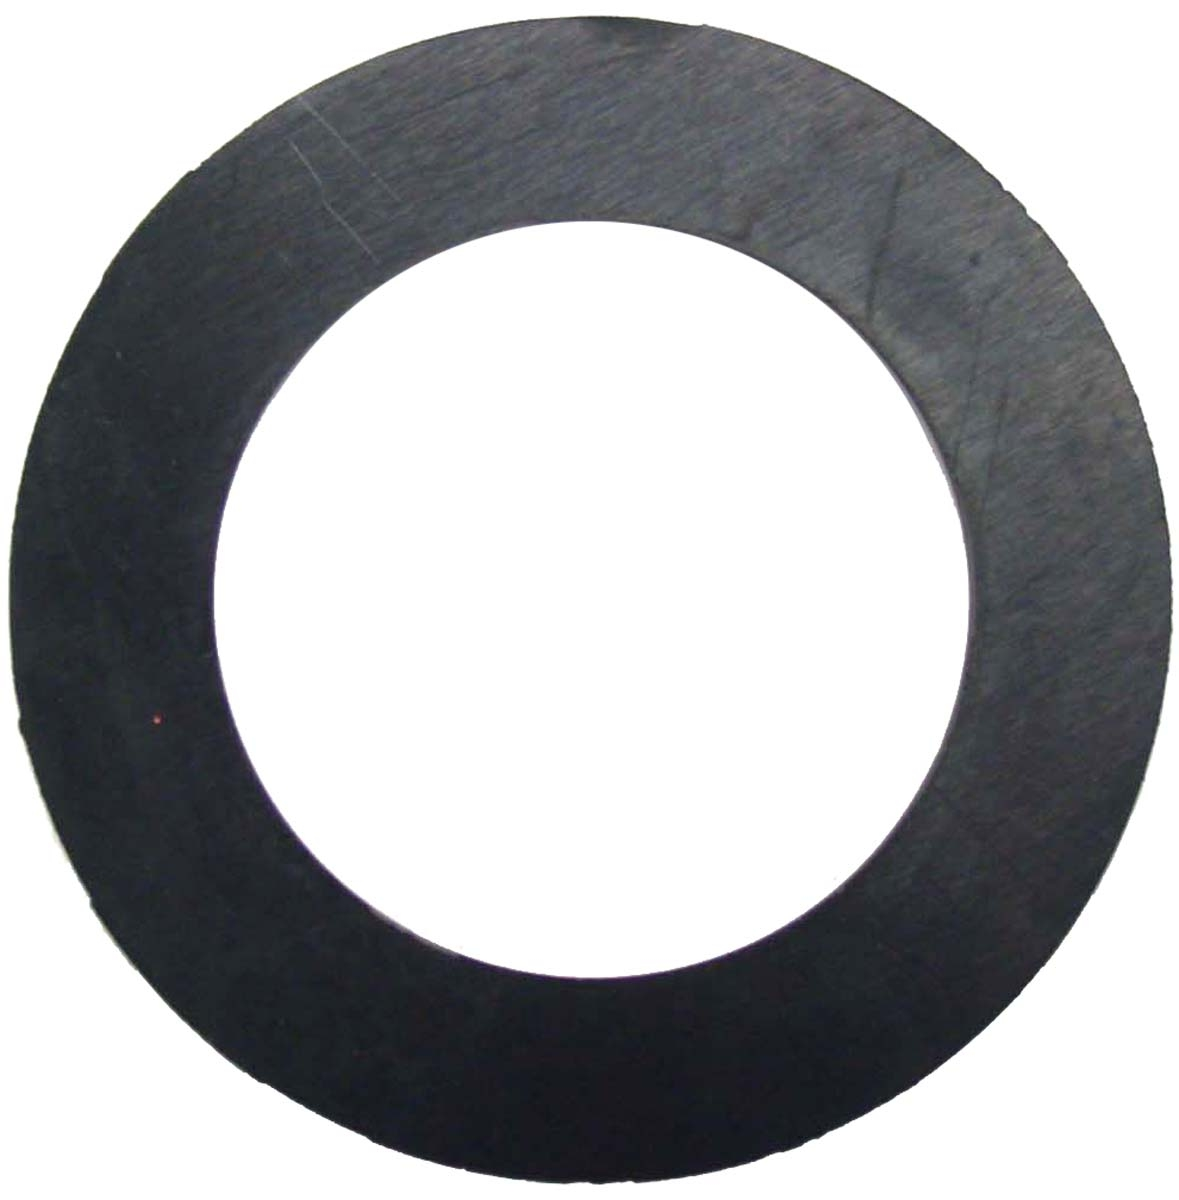 GASKET (FOR PRE-CLEANER DUST JAR)